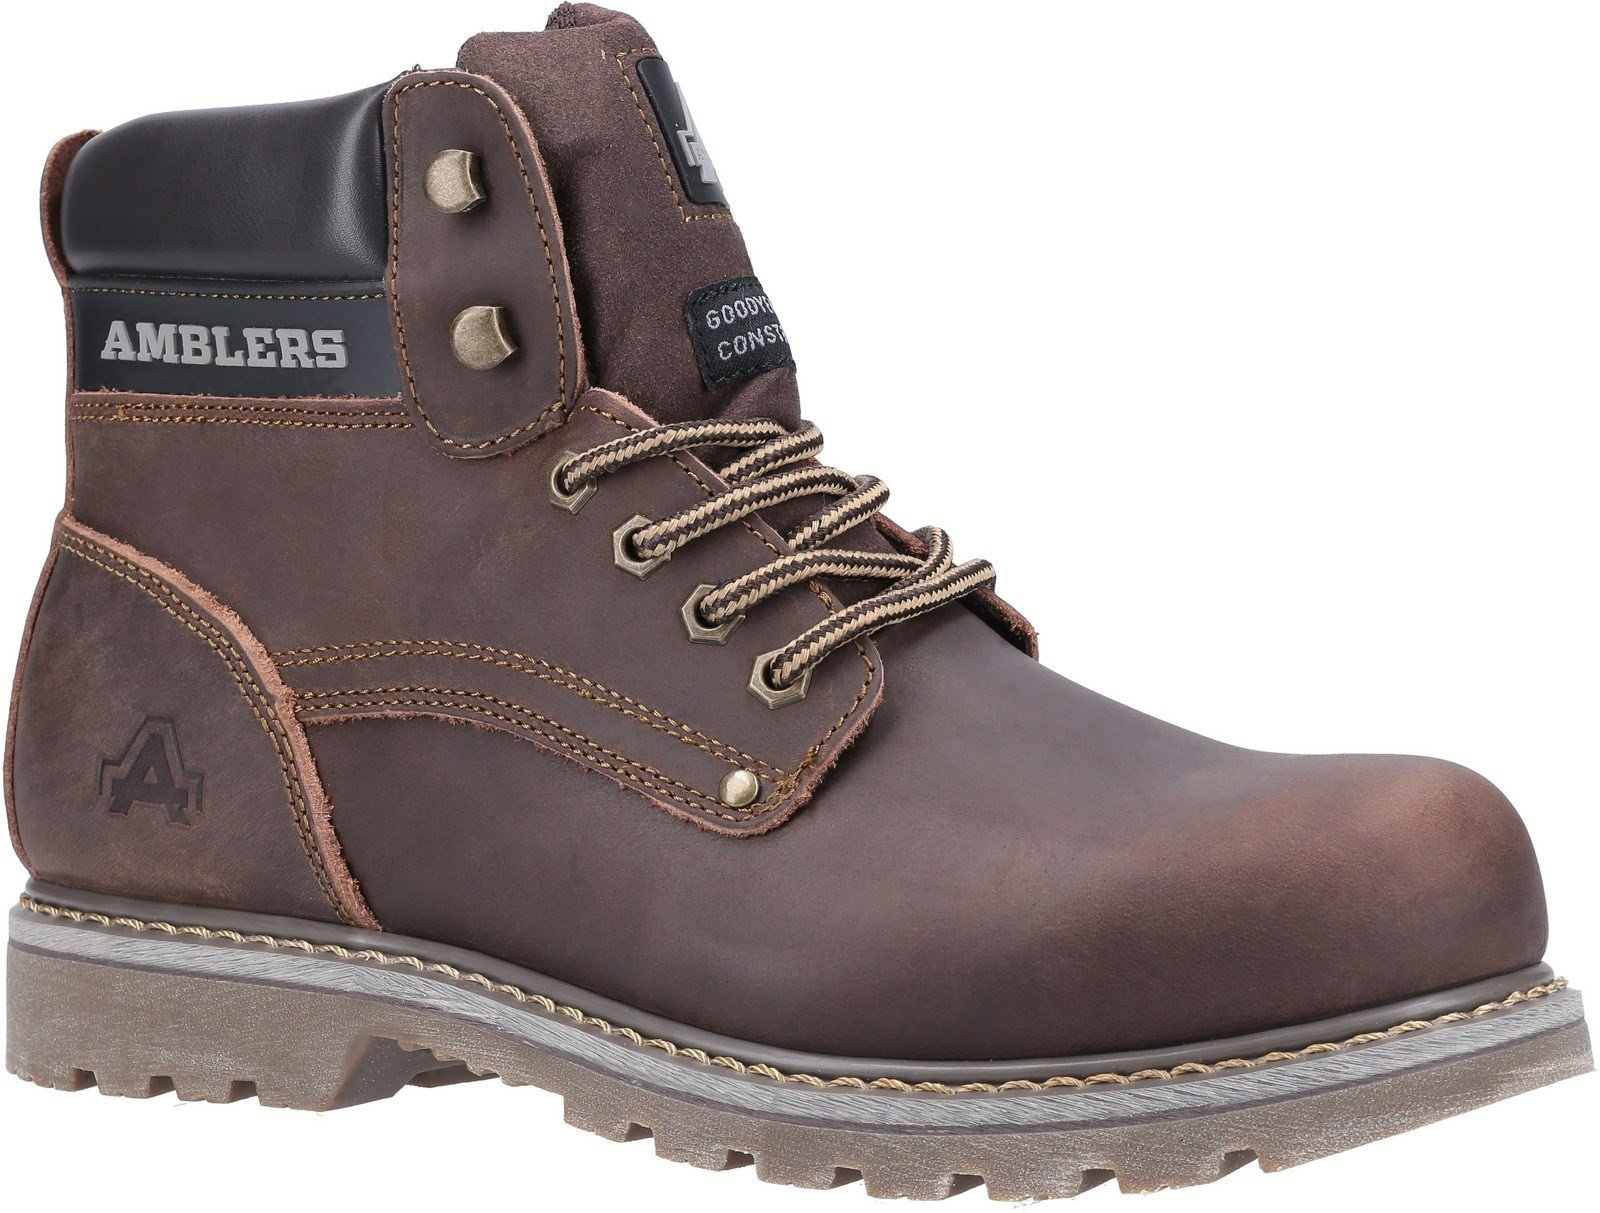 Amblers Men's Dorking Casual Lace Up Boot Brown 19515 - Brown Crazy Horse 6